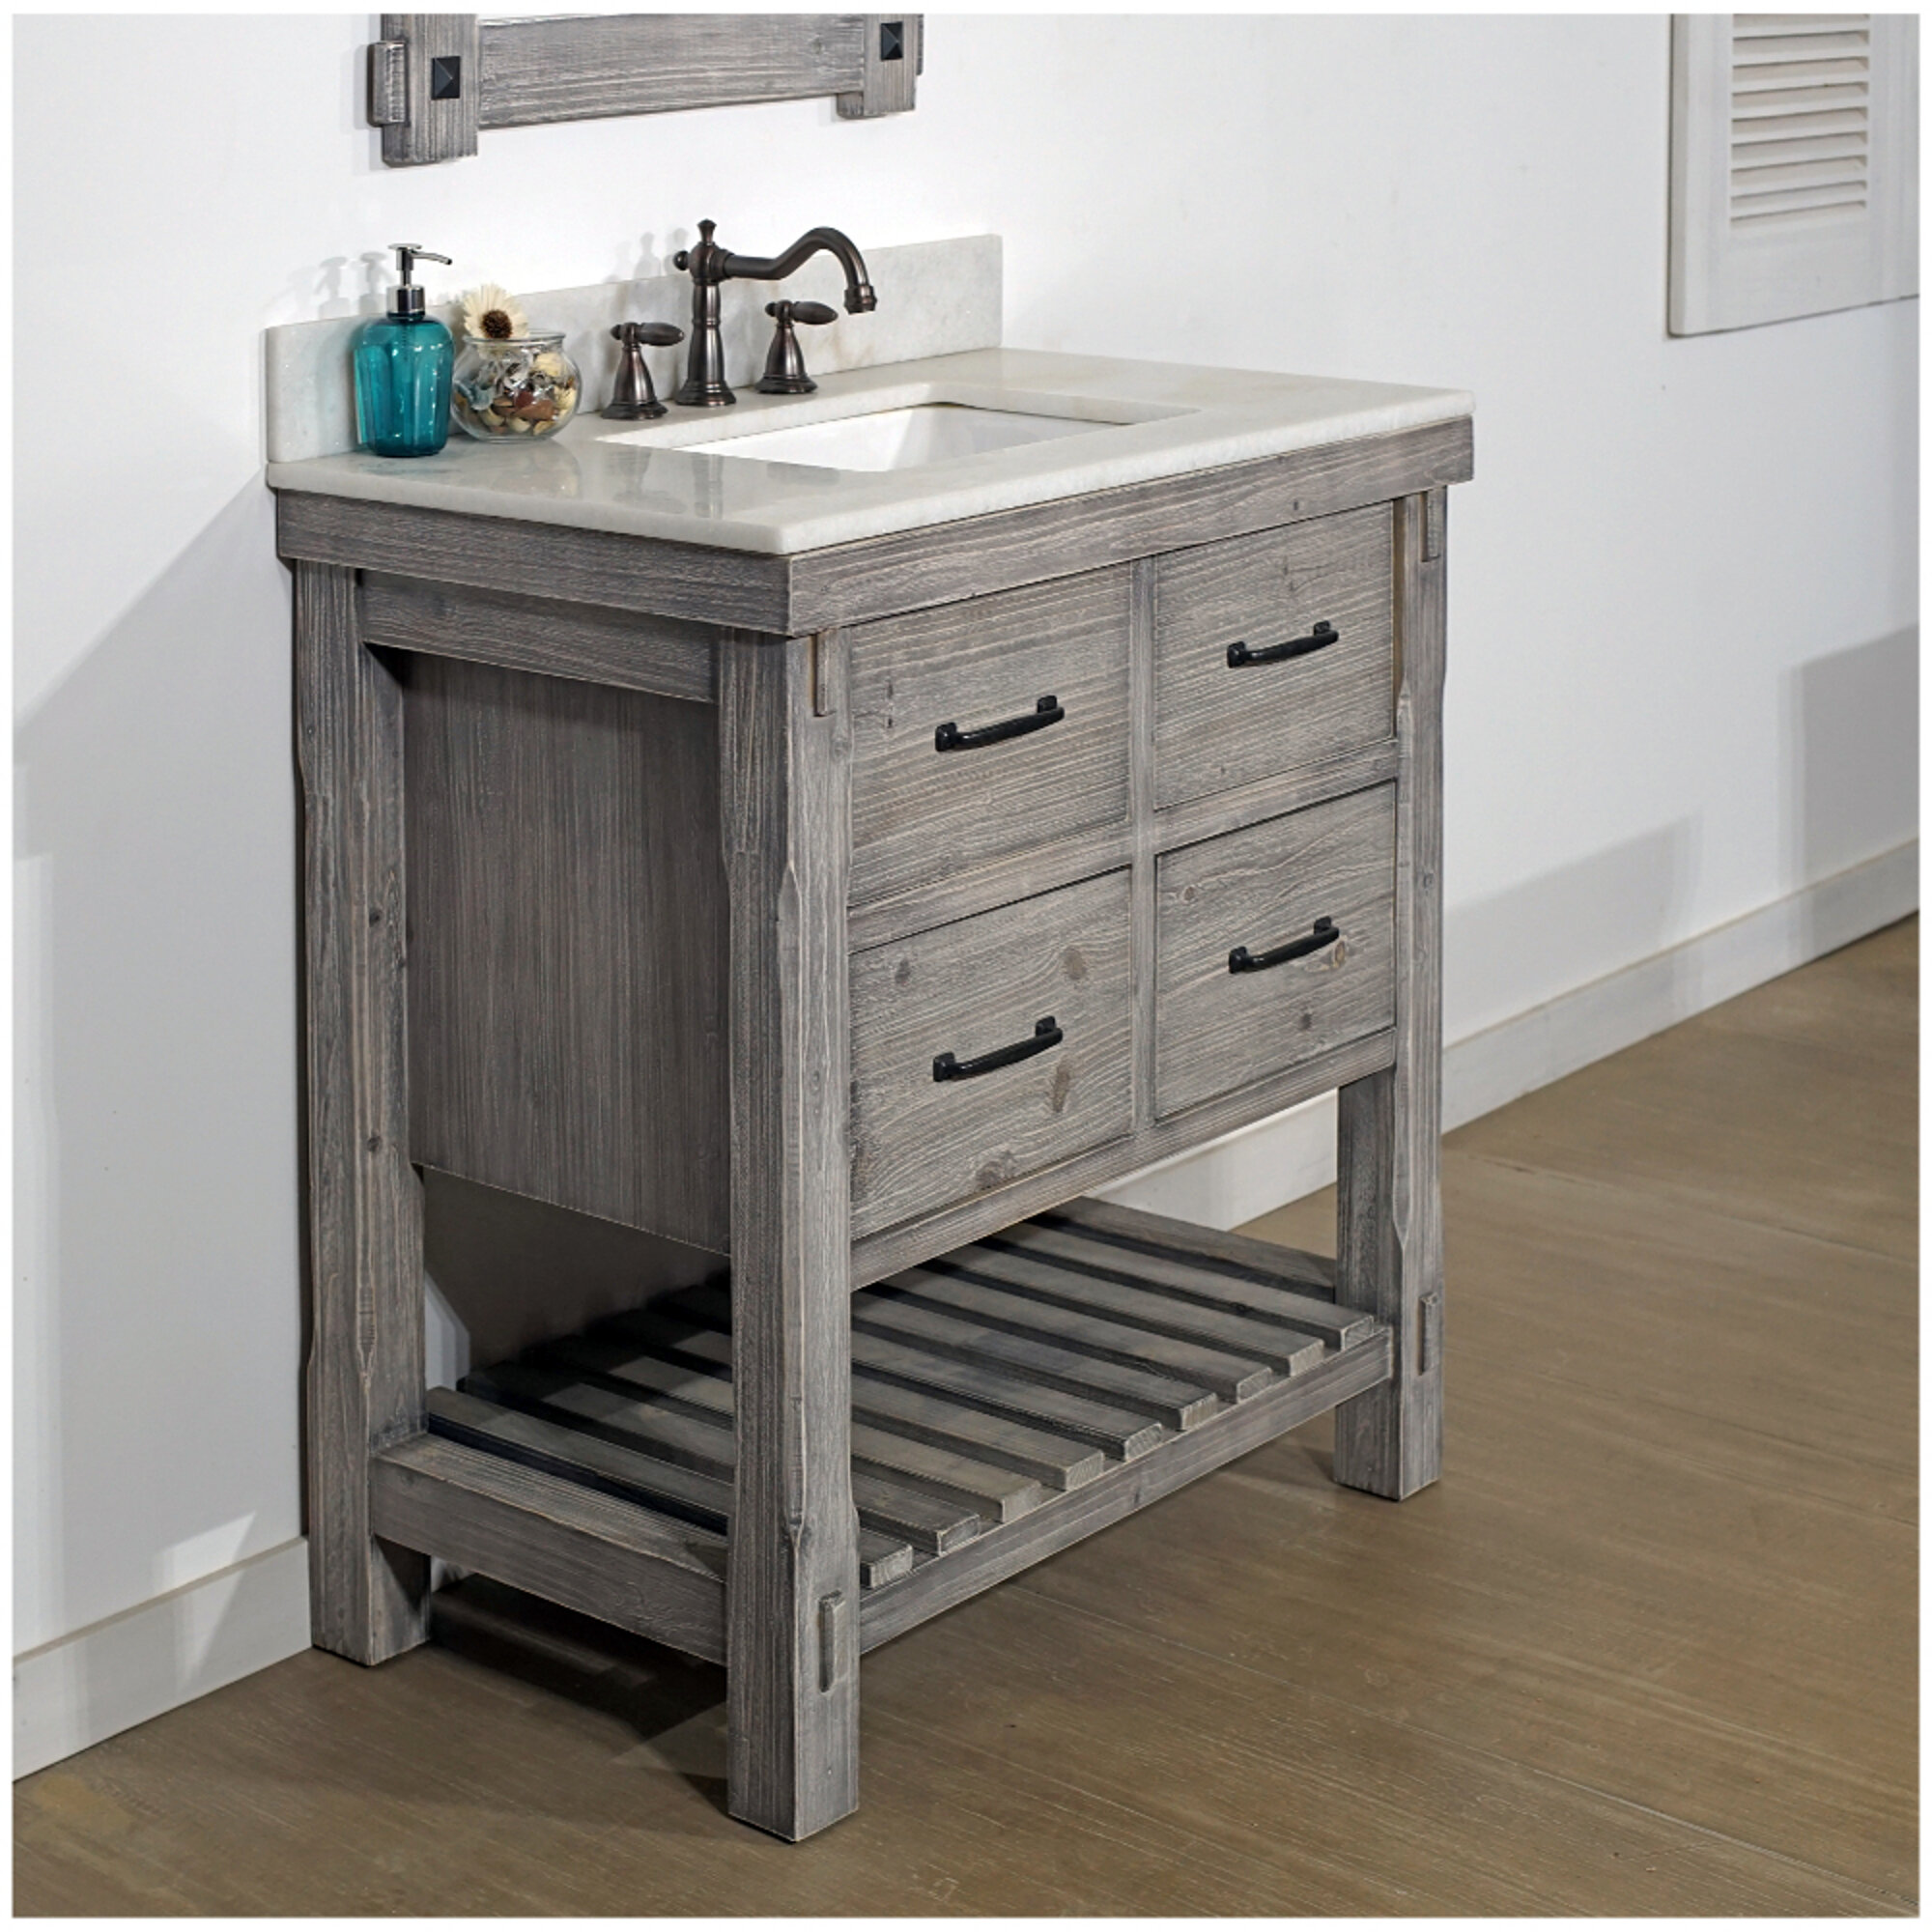 Gracie Oaks Hamm Rustic 37 Single Bathroom Vanity Set Wayfair